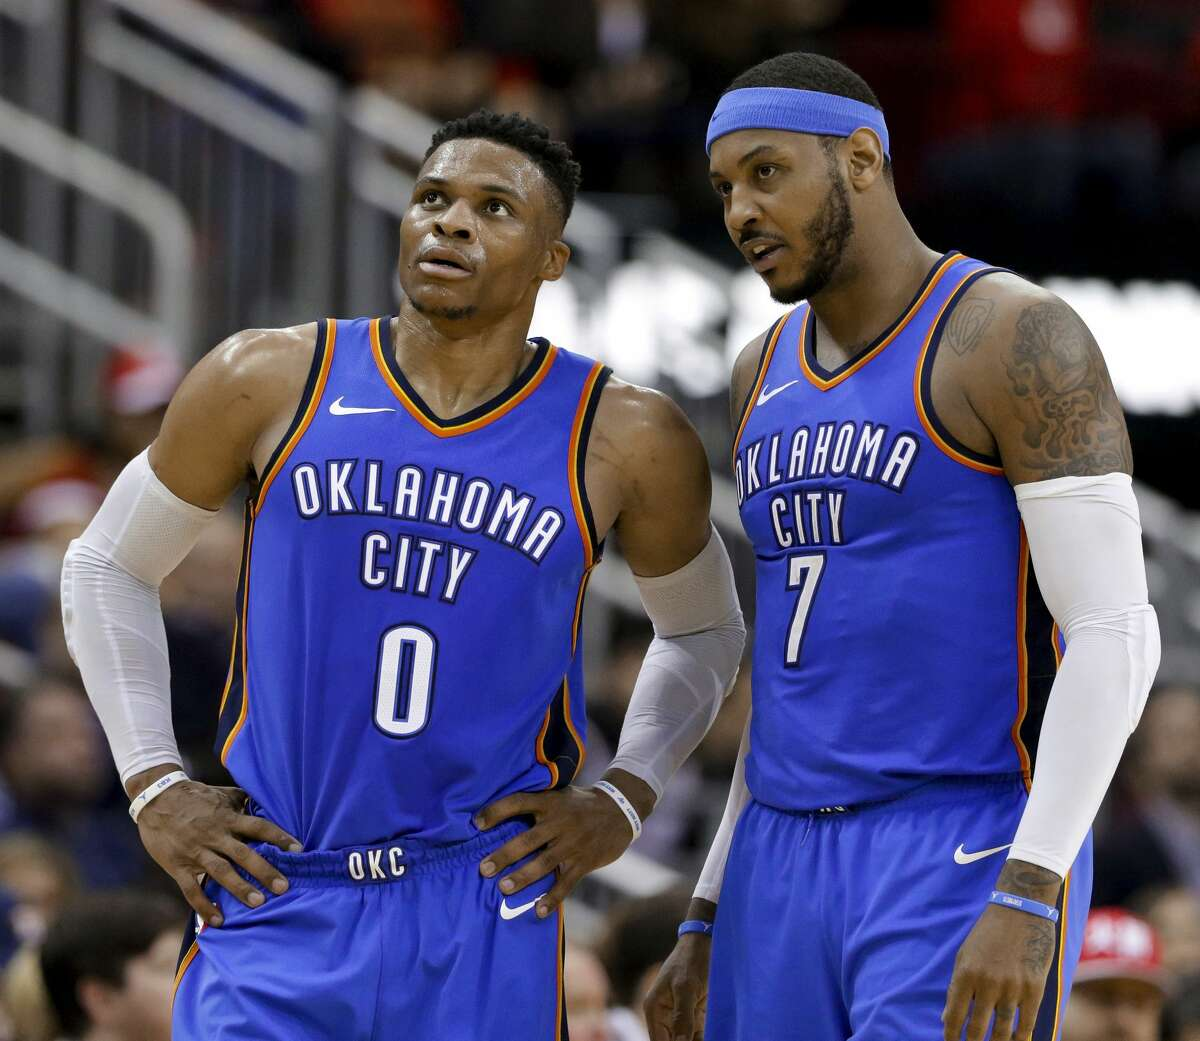 Oklahoma City Thunder guard Russell Westbrook (0) and forward Carmelo Anthony (7) talk during the second half of the team's NBA basketball game against the Houston Rockets on Saturday, April 7, 2018, in Houston. (AP Photo/Michael Wyke)